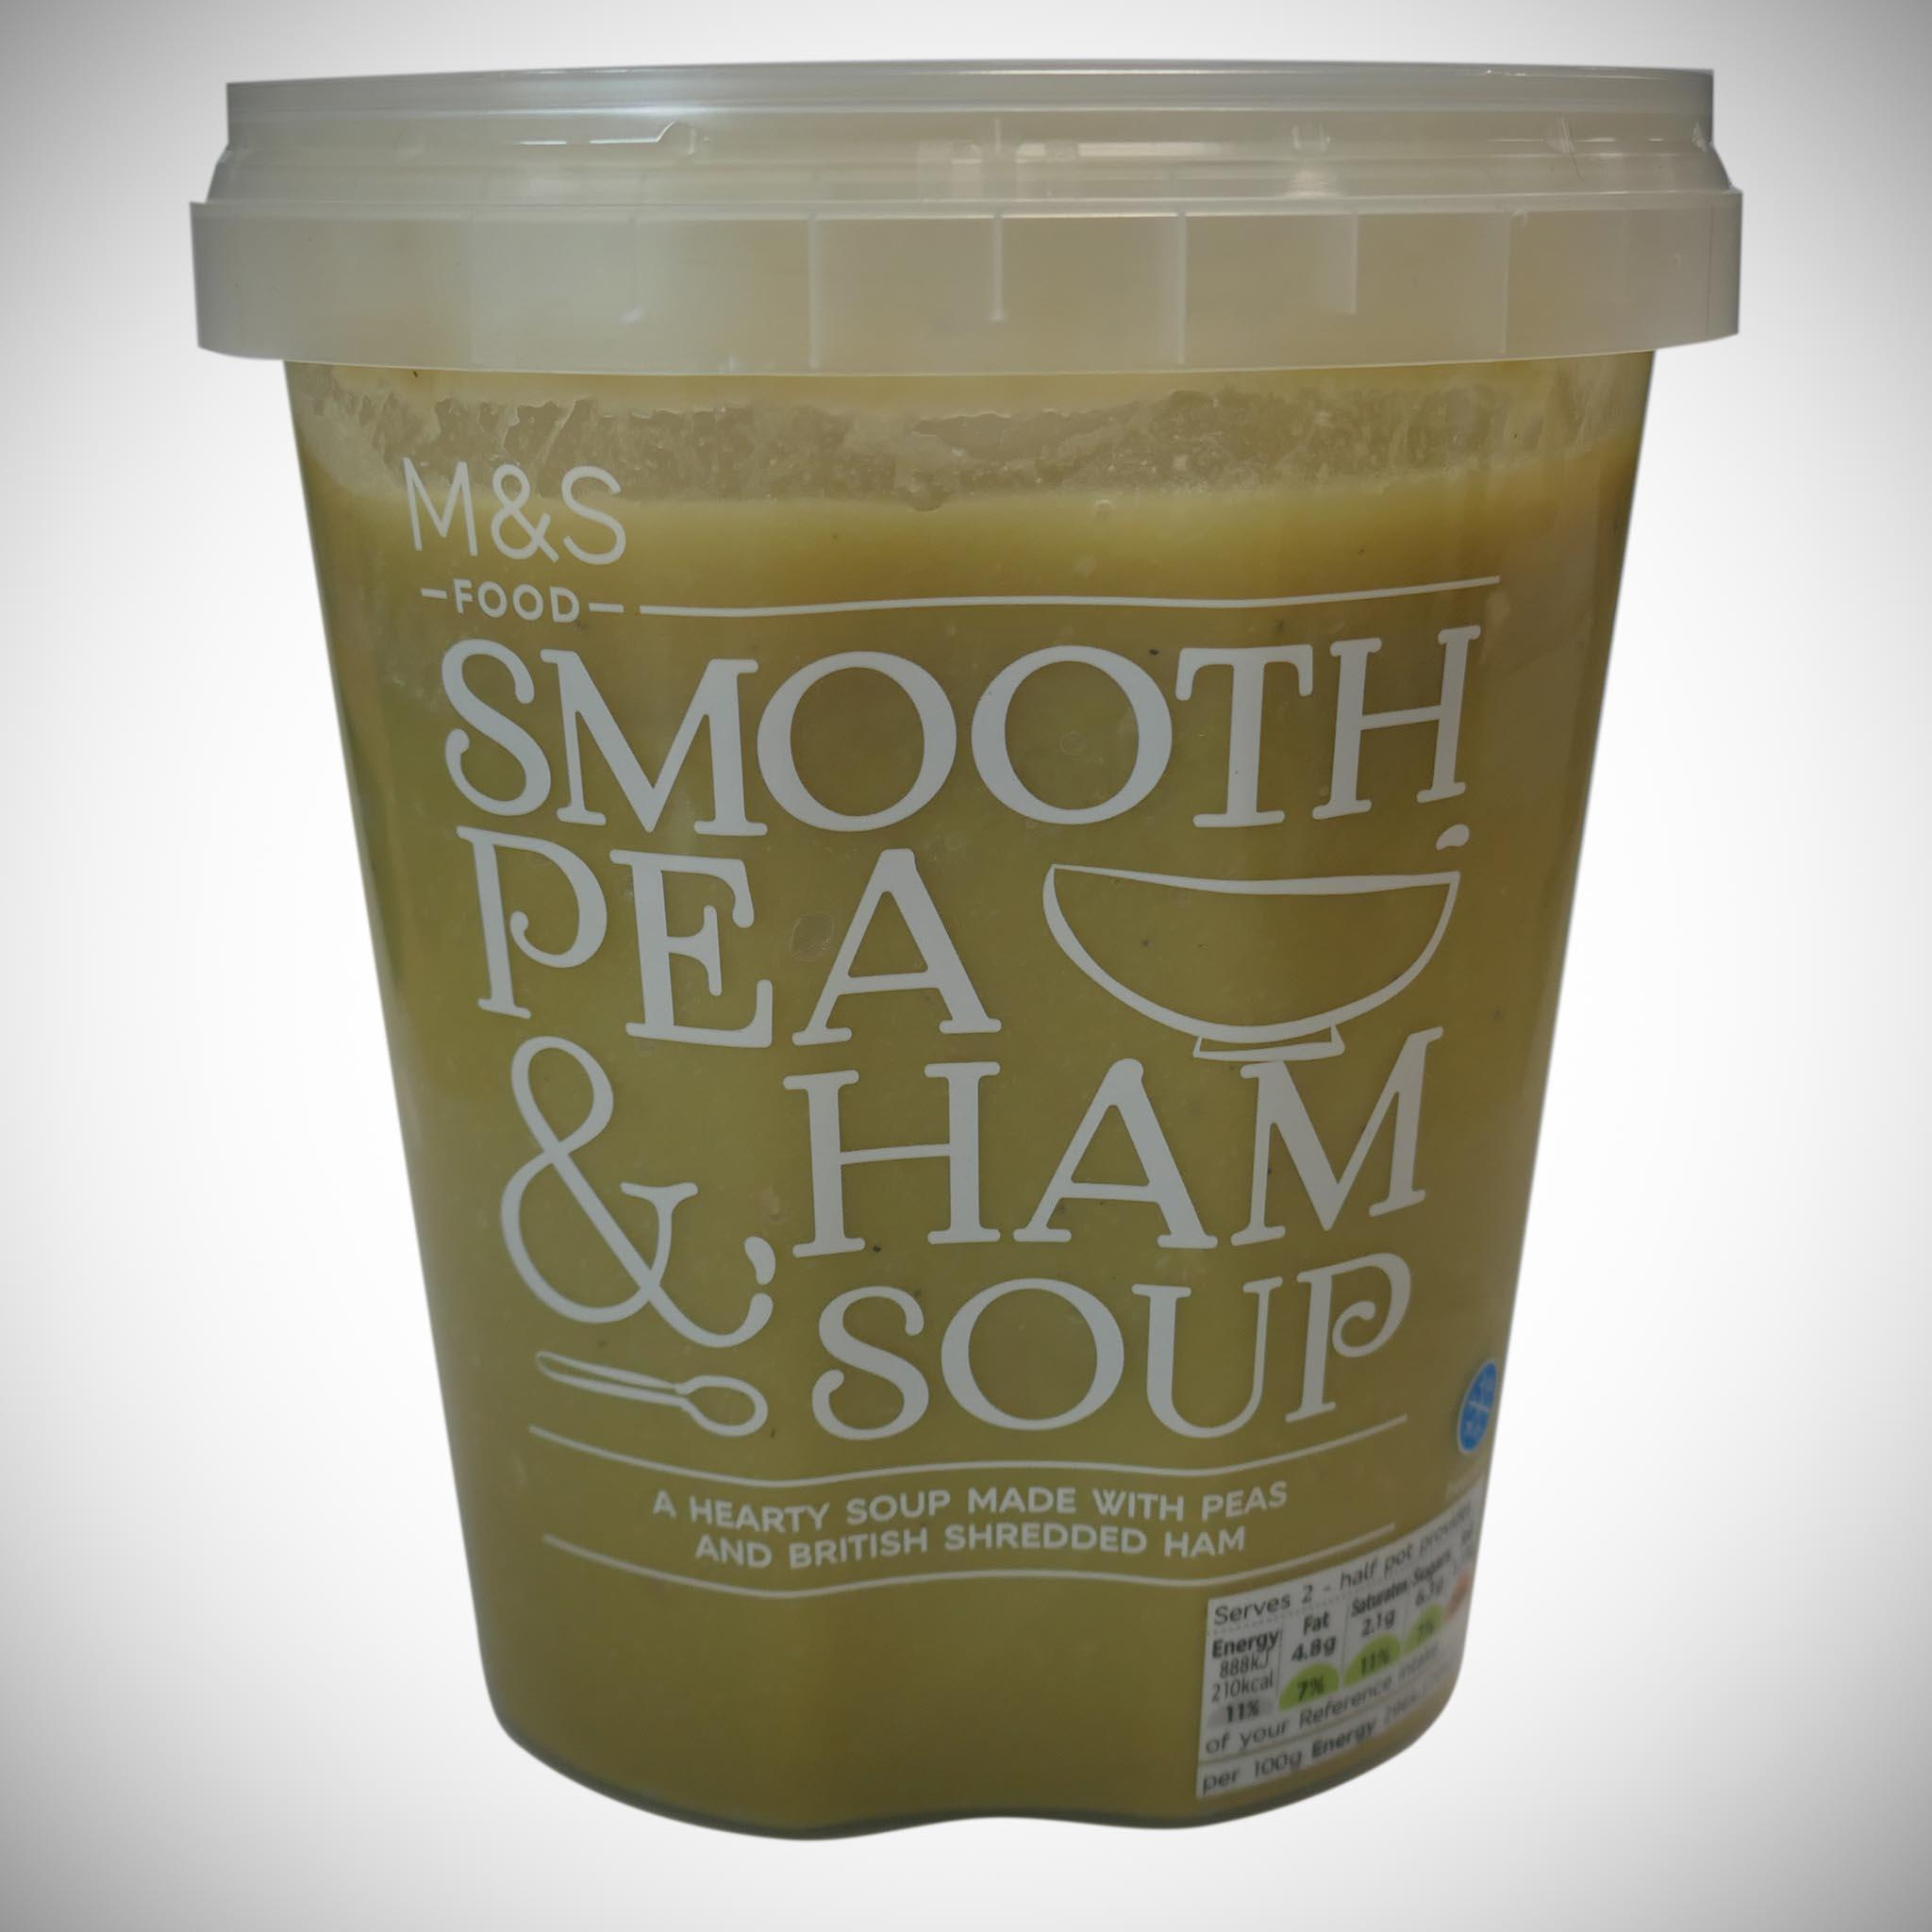 Smooth Pea & Ham Soup 600g